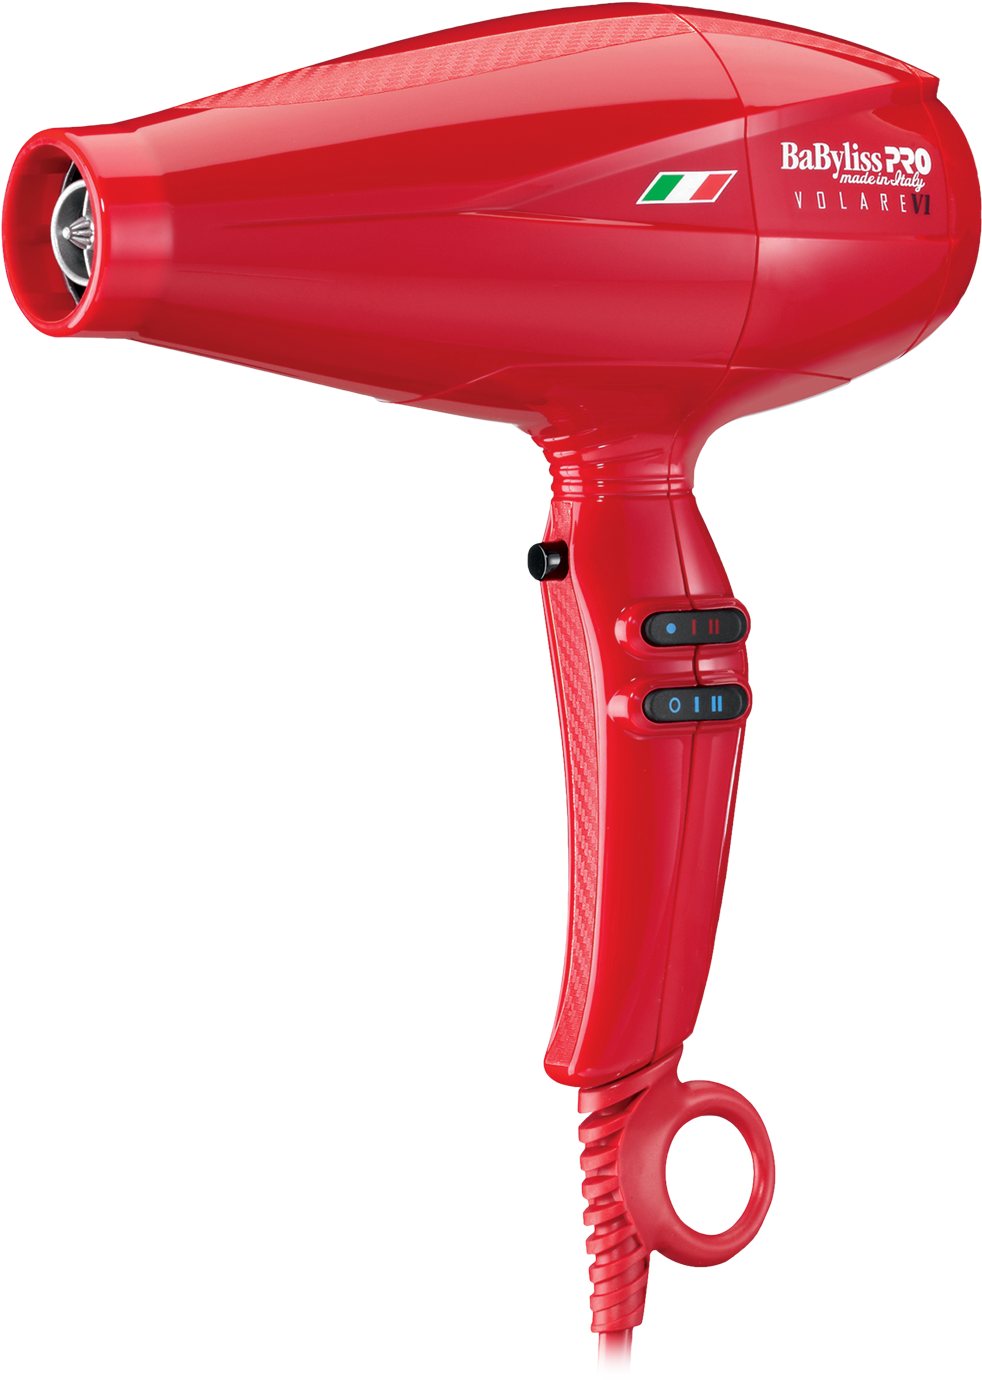 Download Babylisspro Ferrari Red Volare V1 Blow Dryer Babyliss Pro Nano Titanium Volare V1 Ferrari Full Size Png Image With No Background Pngkey Com